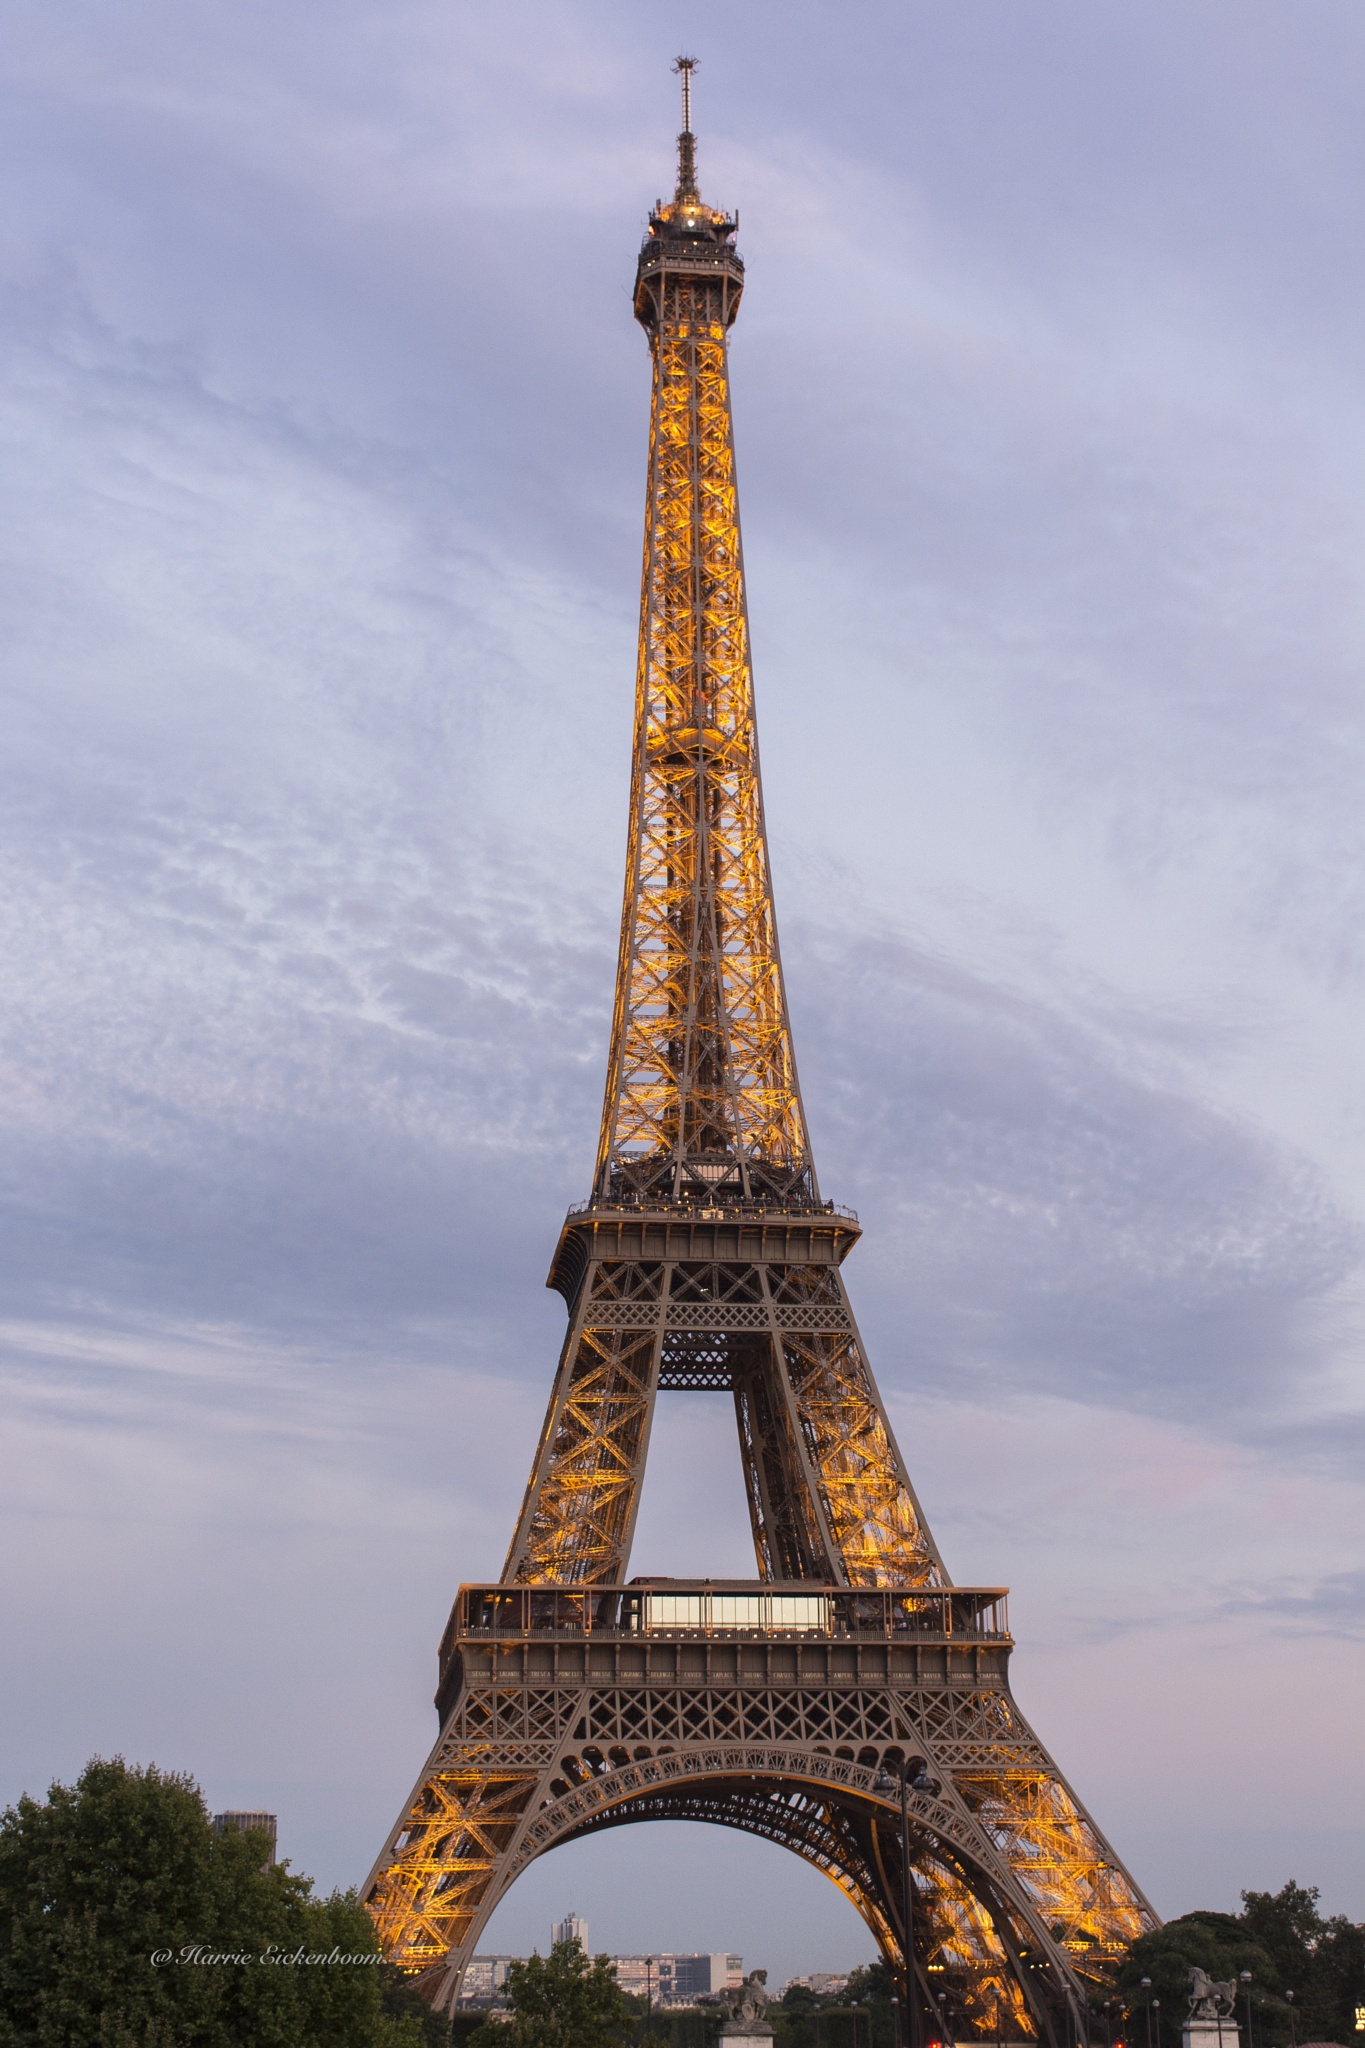 Eiffel Tower. by Harrie Eickenboom.